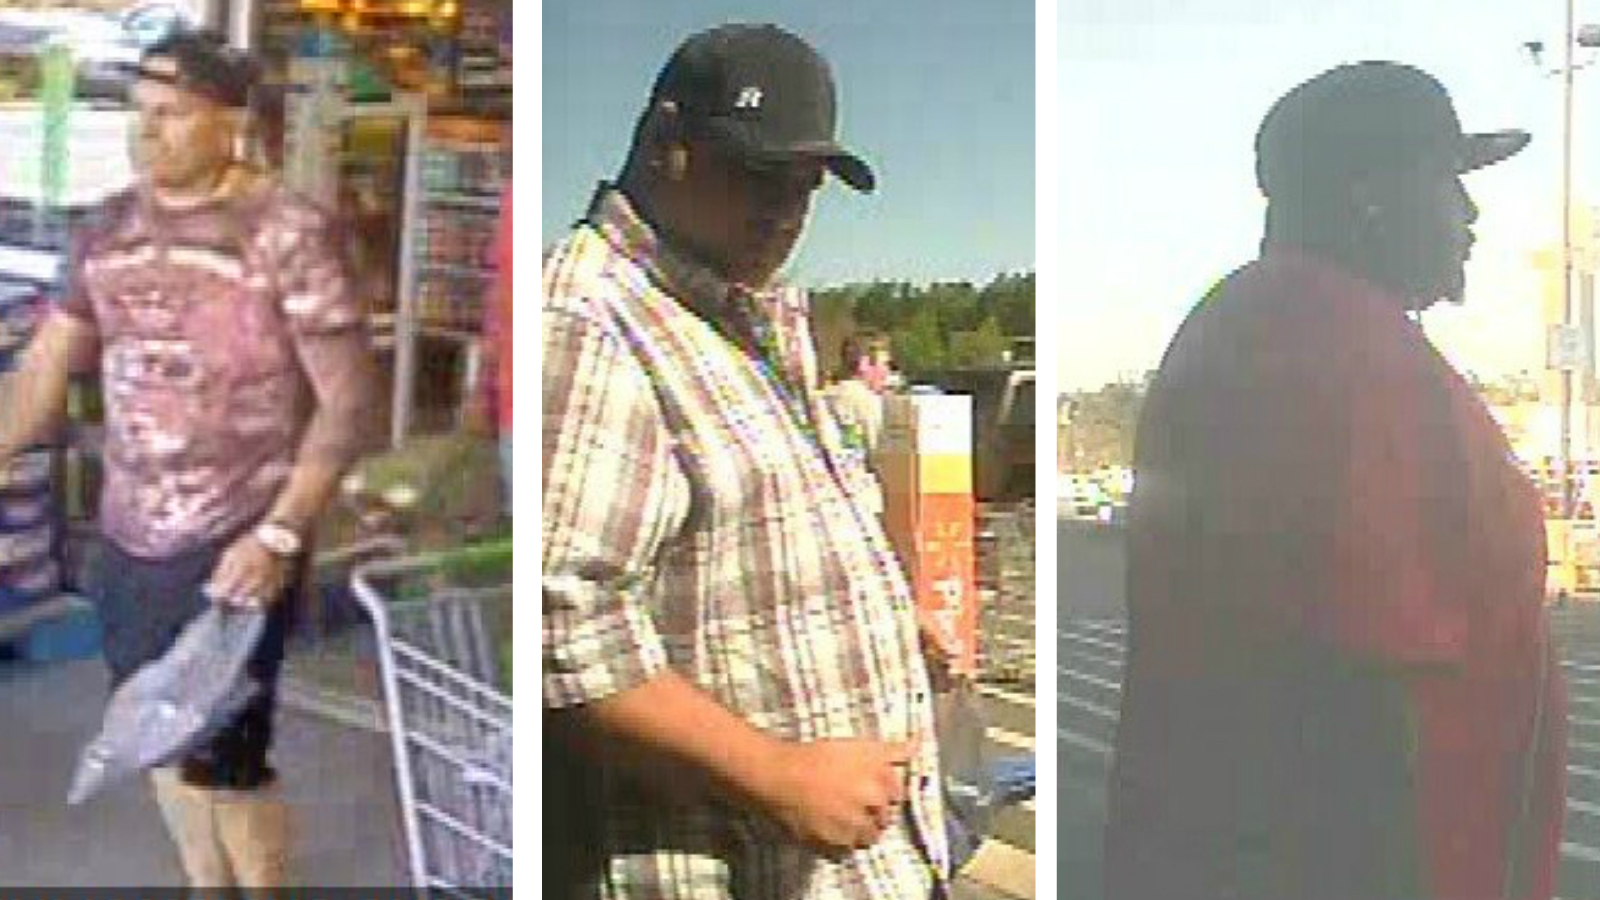 Goose Creek Police are asking for the public's help identifying three men accused of committing credit card fraud at Walmart stores in April.